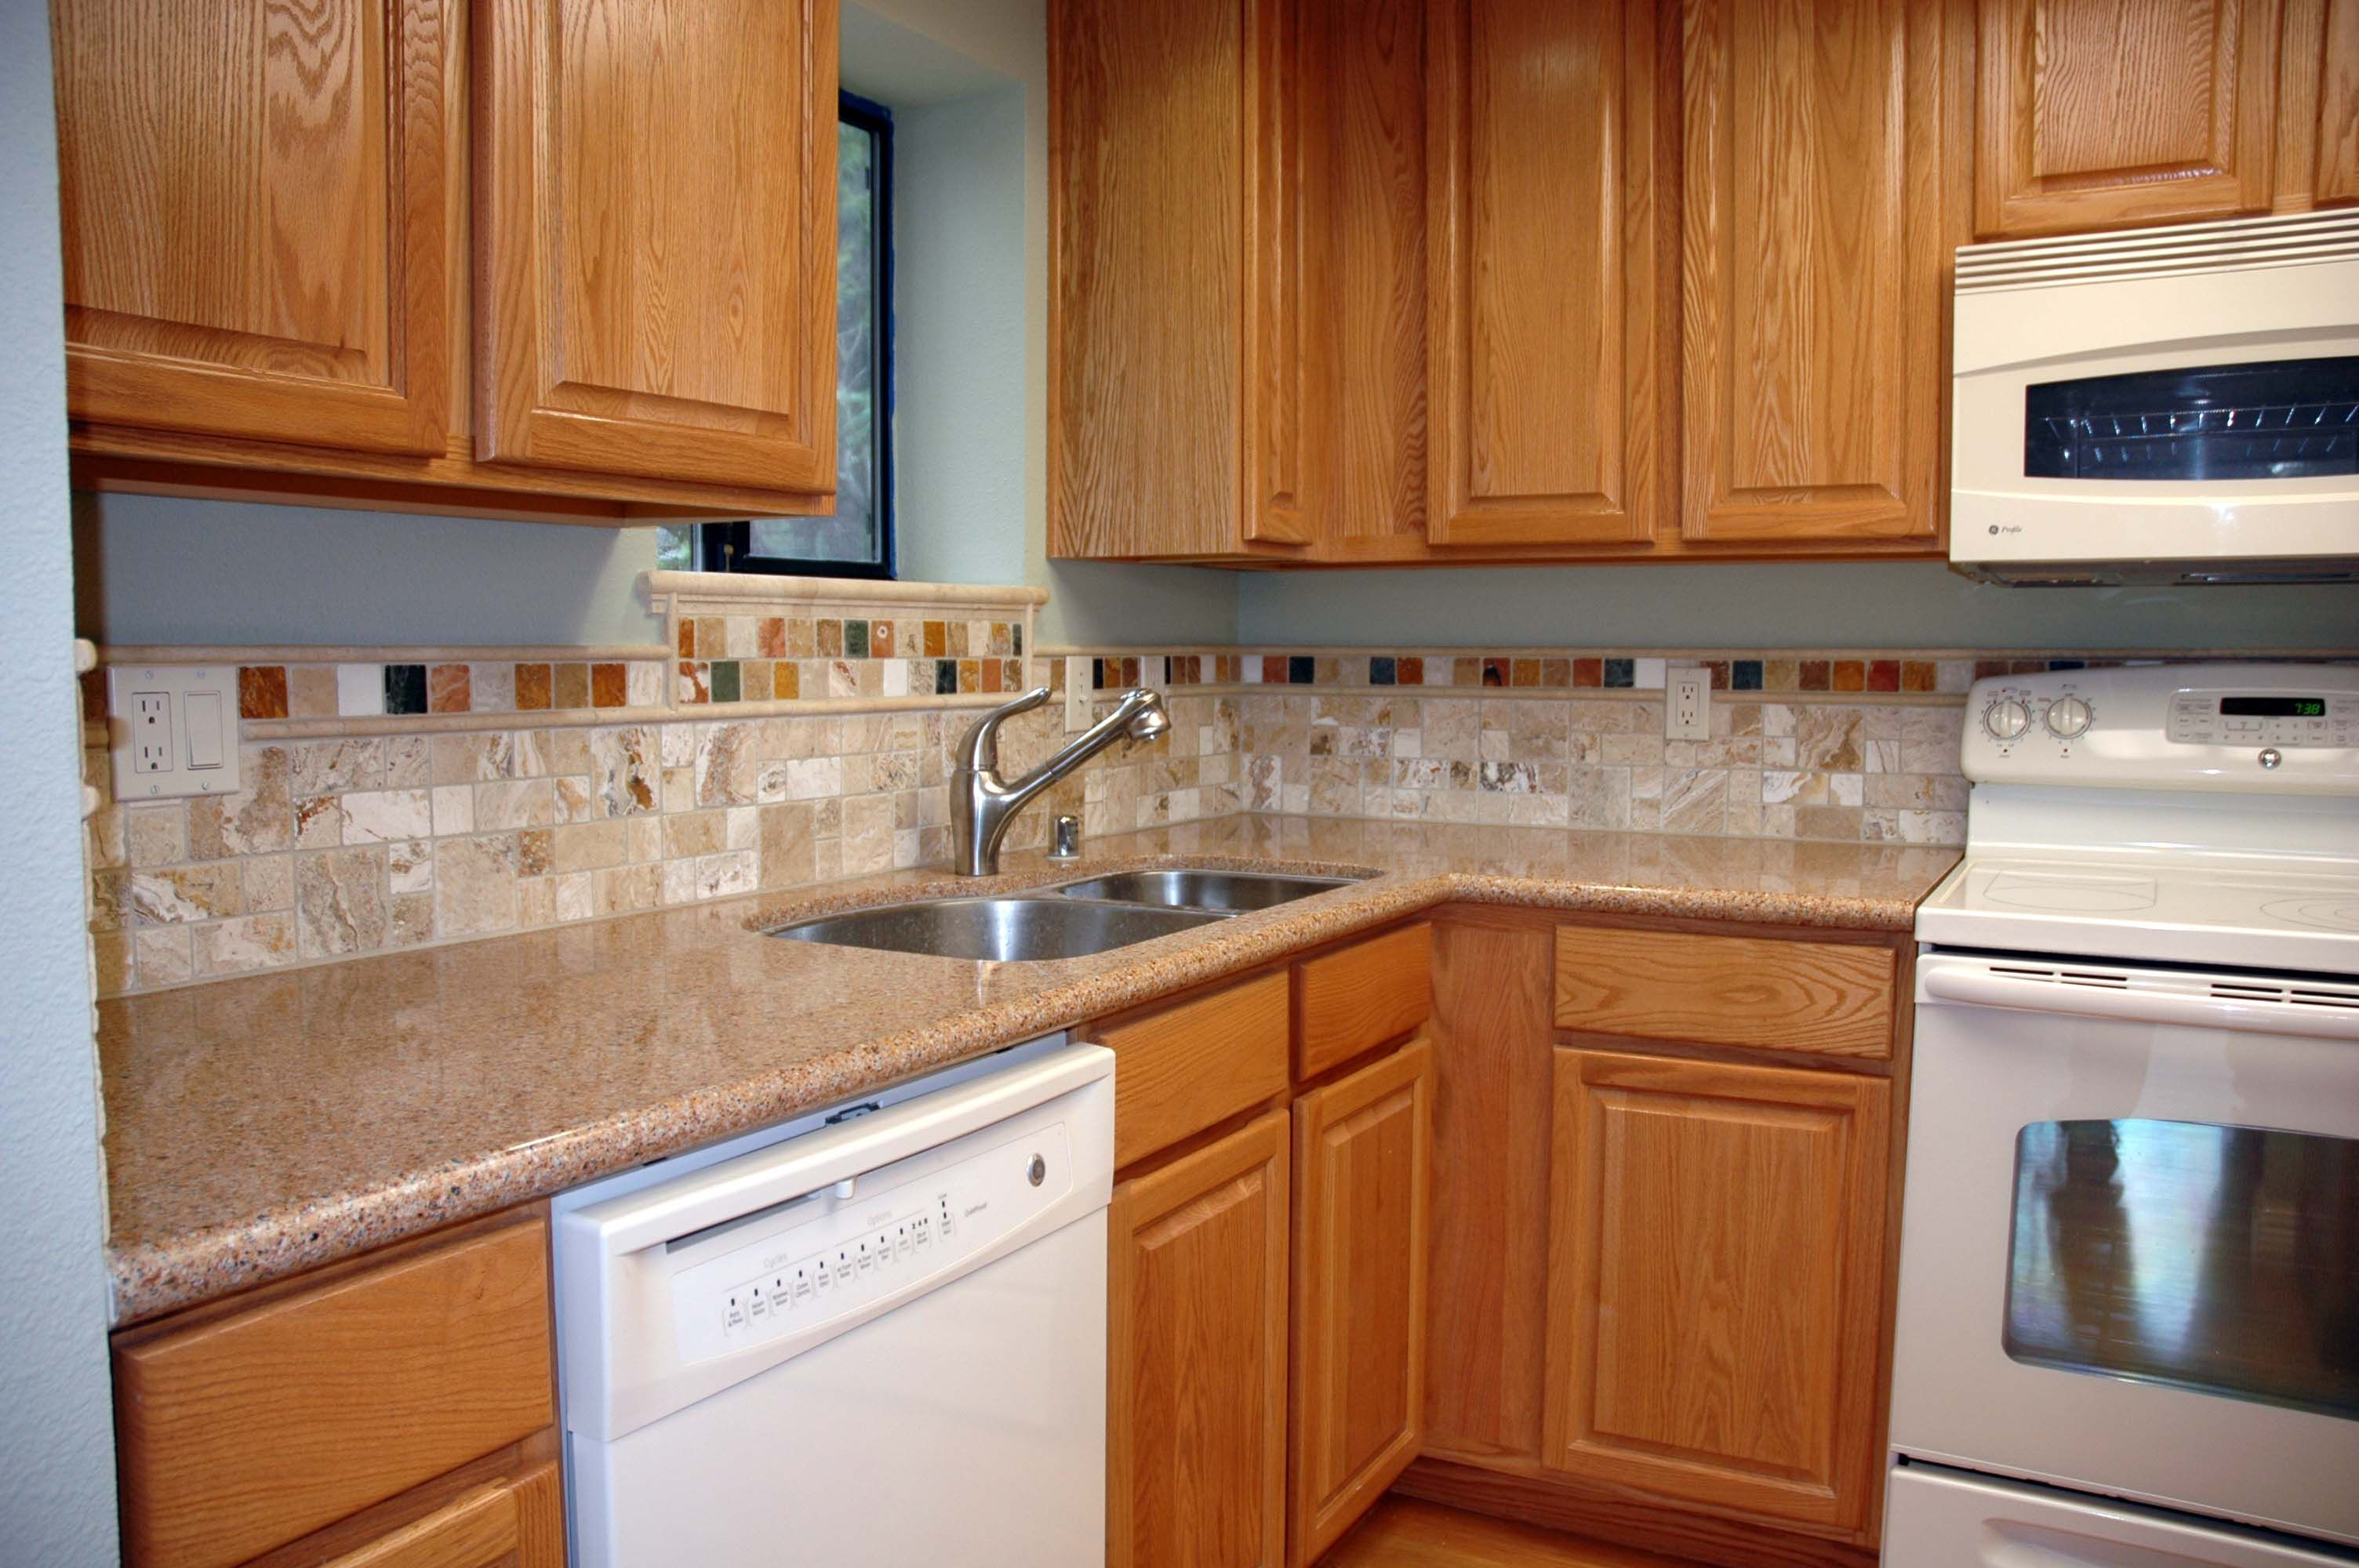 Backsplash For Kitchen With Honey Oak Cabinets Google Search Kitchen Design Luxury Kitchen Backsplash Oak Kitchen Cabinets